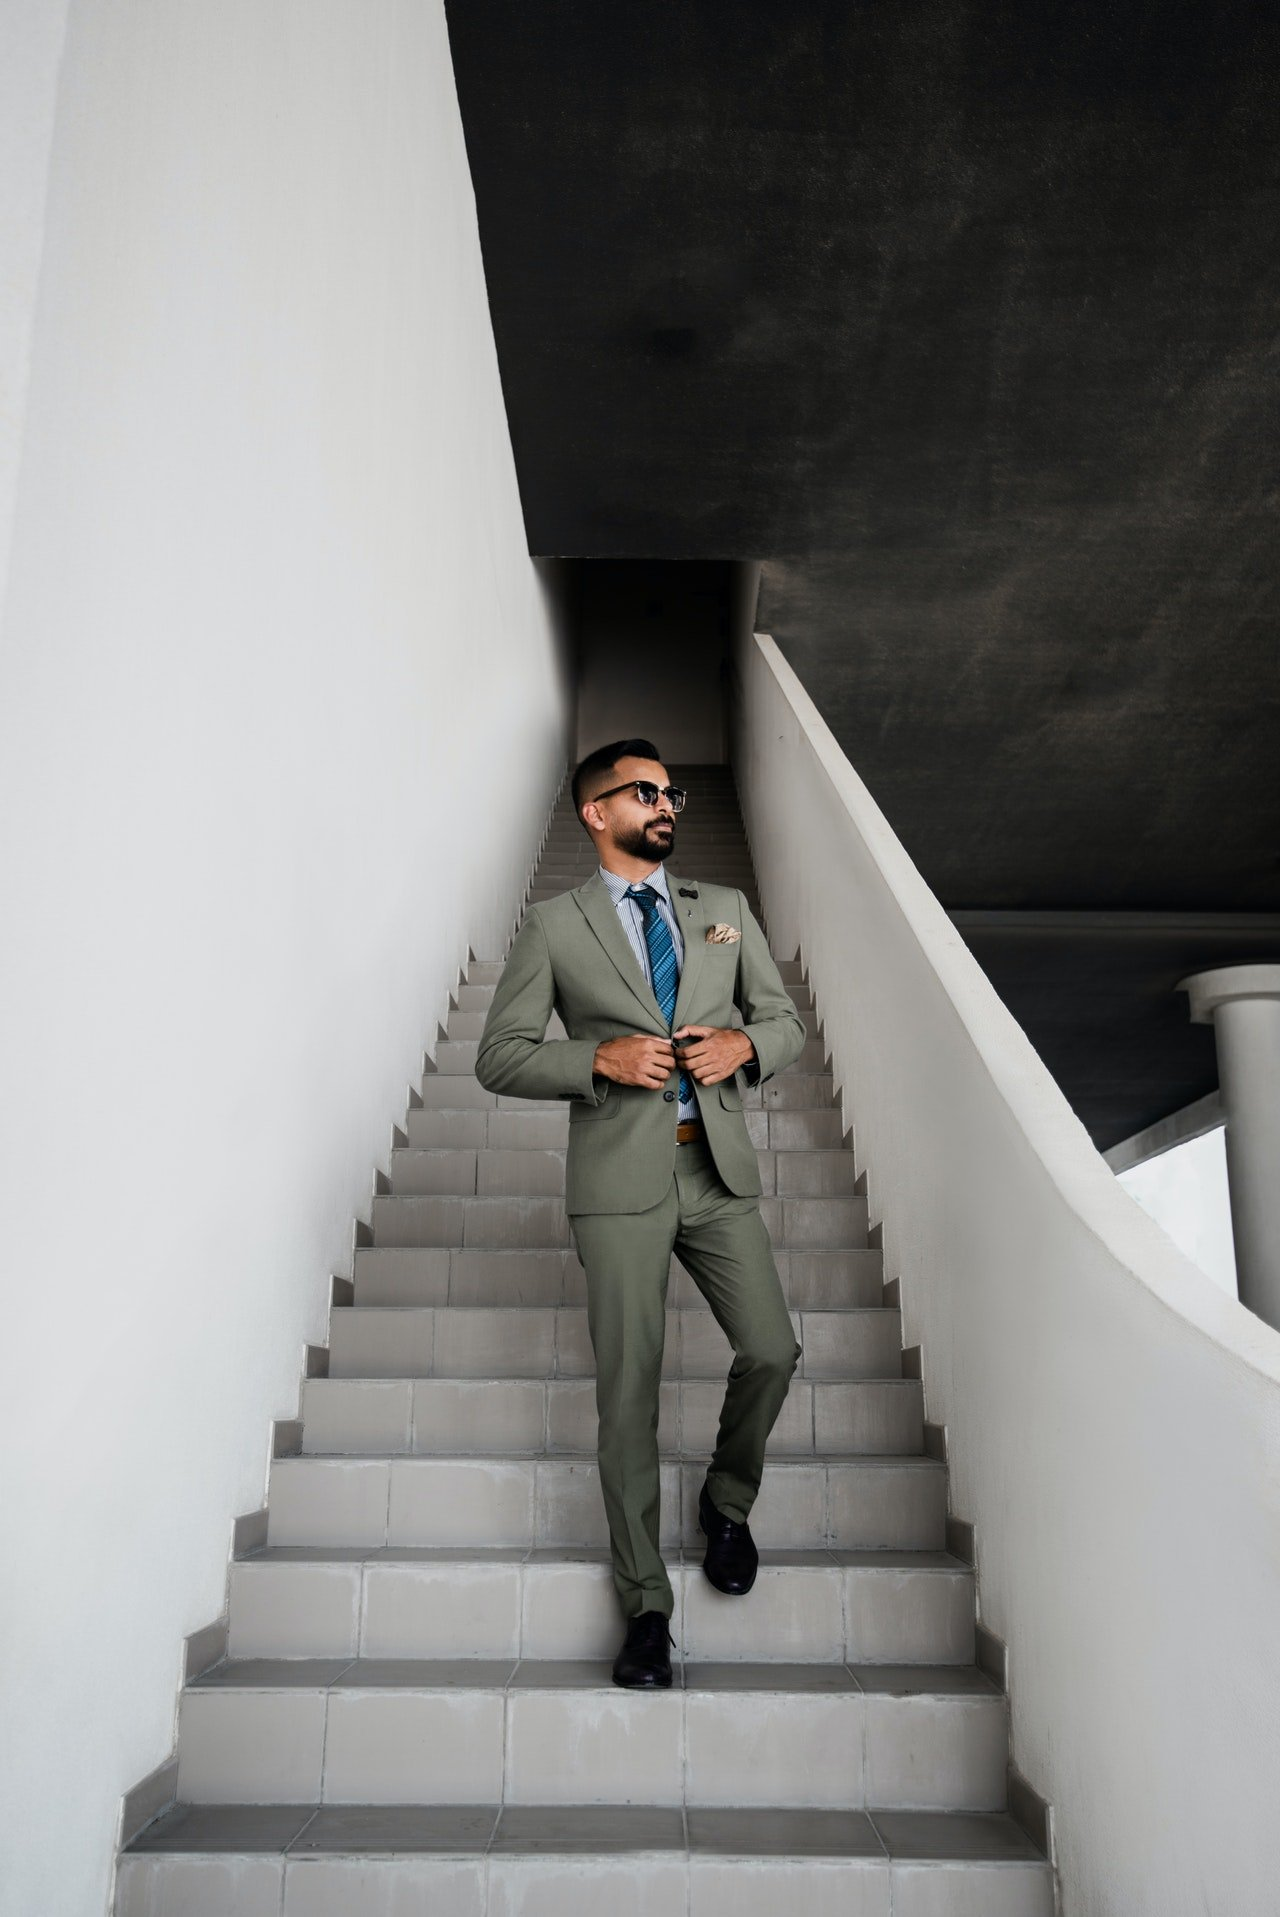 A man in grey suit standing on a staircase   Photo: Pexels